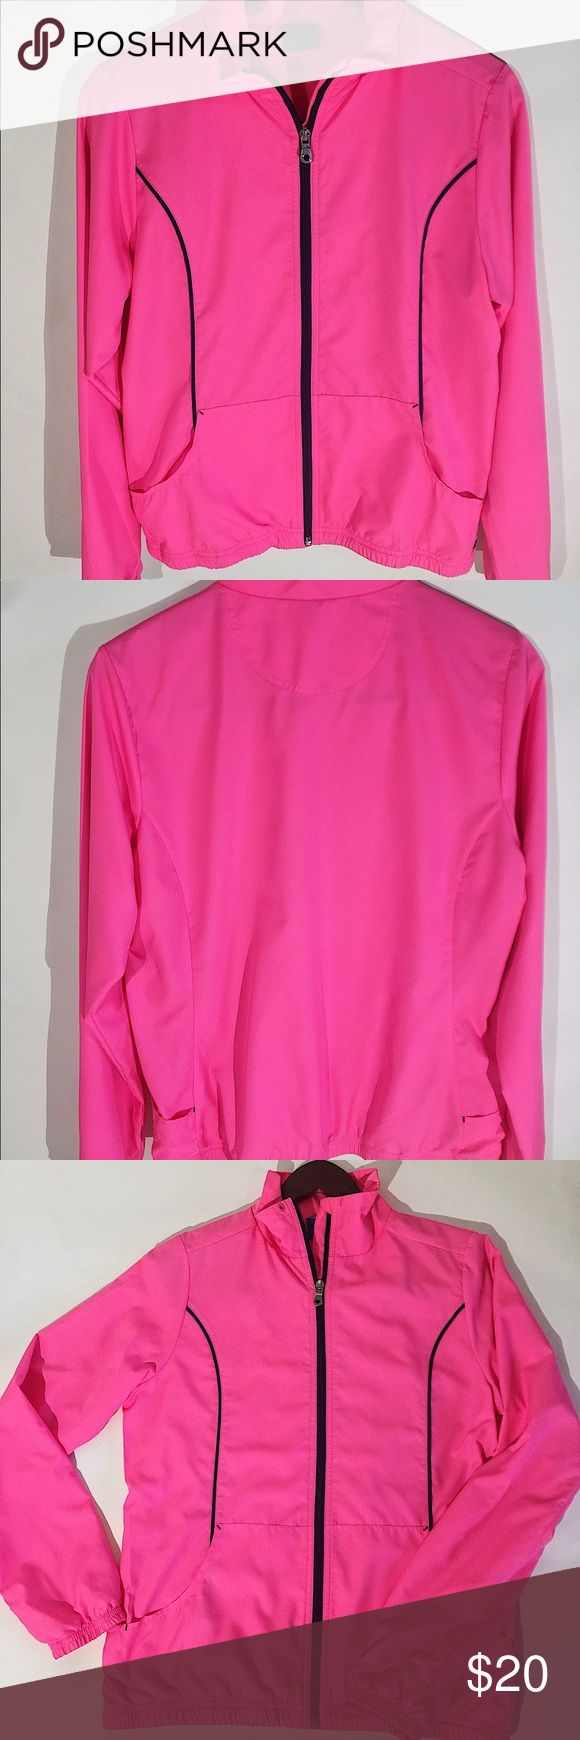 "Women's Pink Reebok Jacket Size Medium This is a beautiful bright pink Reebok full zip up jacket. It is in a size medium.  There is a slight stain on the front of the jacket (which is shown in the pictures) but you have to look for it to really notice it. Other than that it is in great condition.  The sleeve cuffs and the bottom part of the jacket are elastic.   It measures approximately 27 1/2 inches in length, the underarm to underarm measures 19 1/2 inches, and the sleeve length is 26""…"